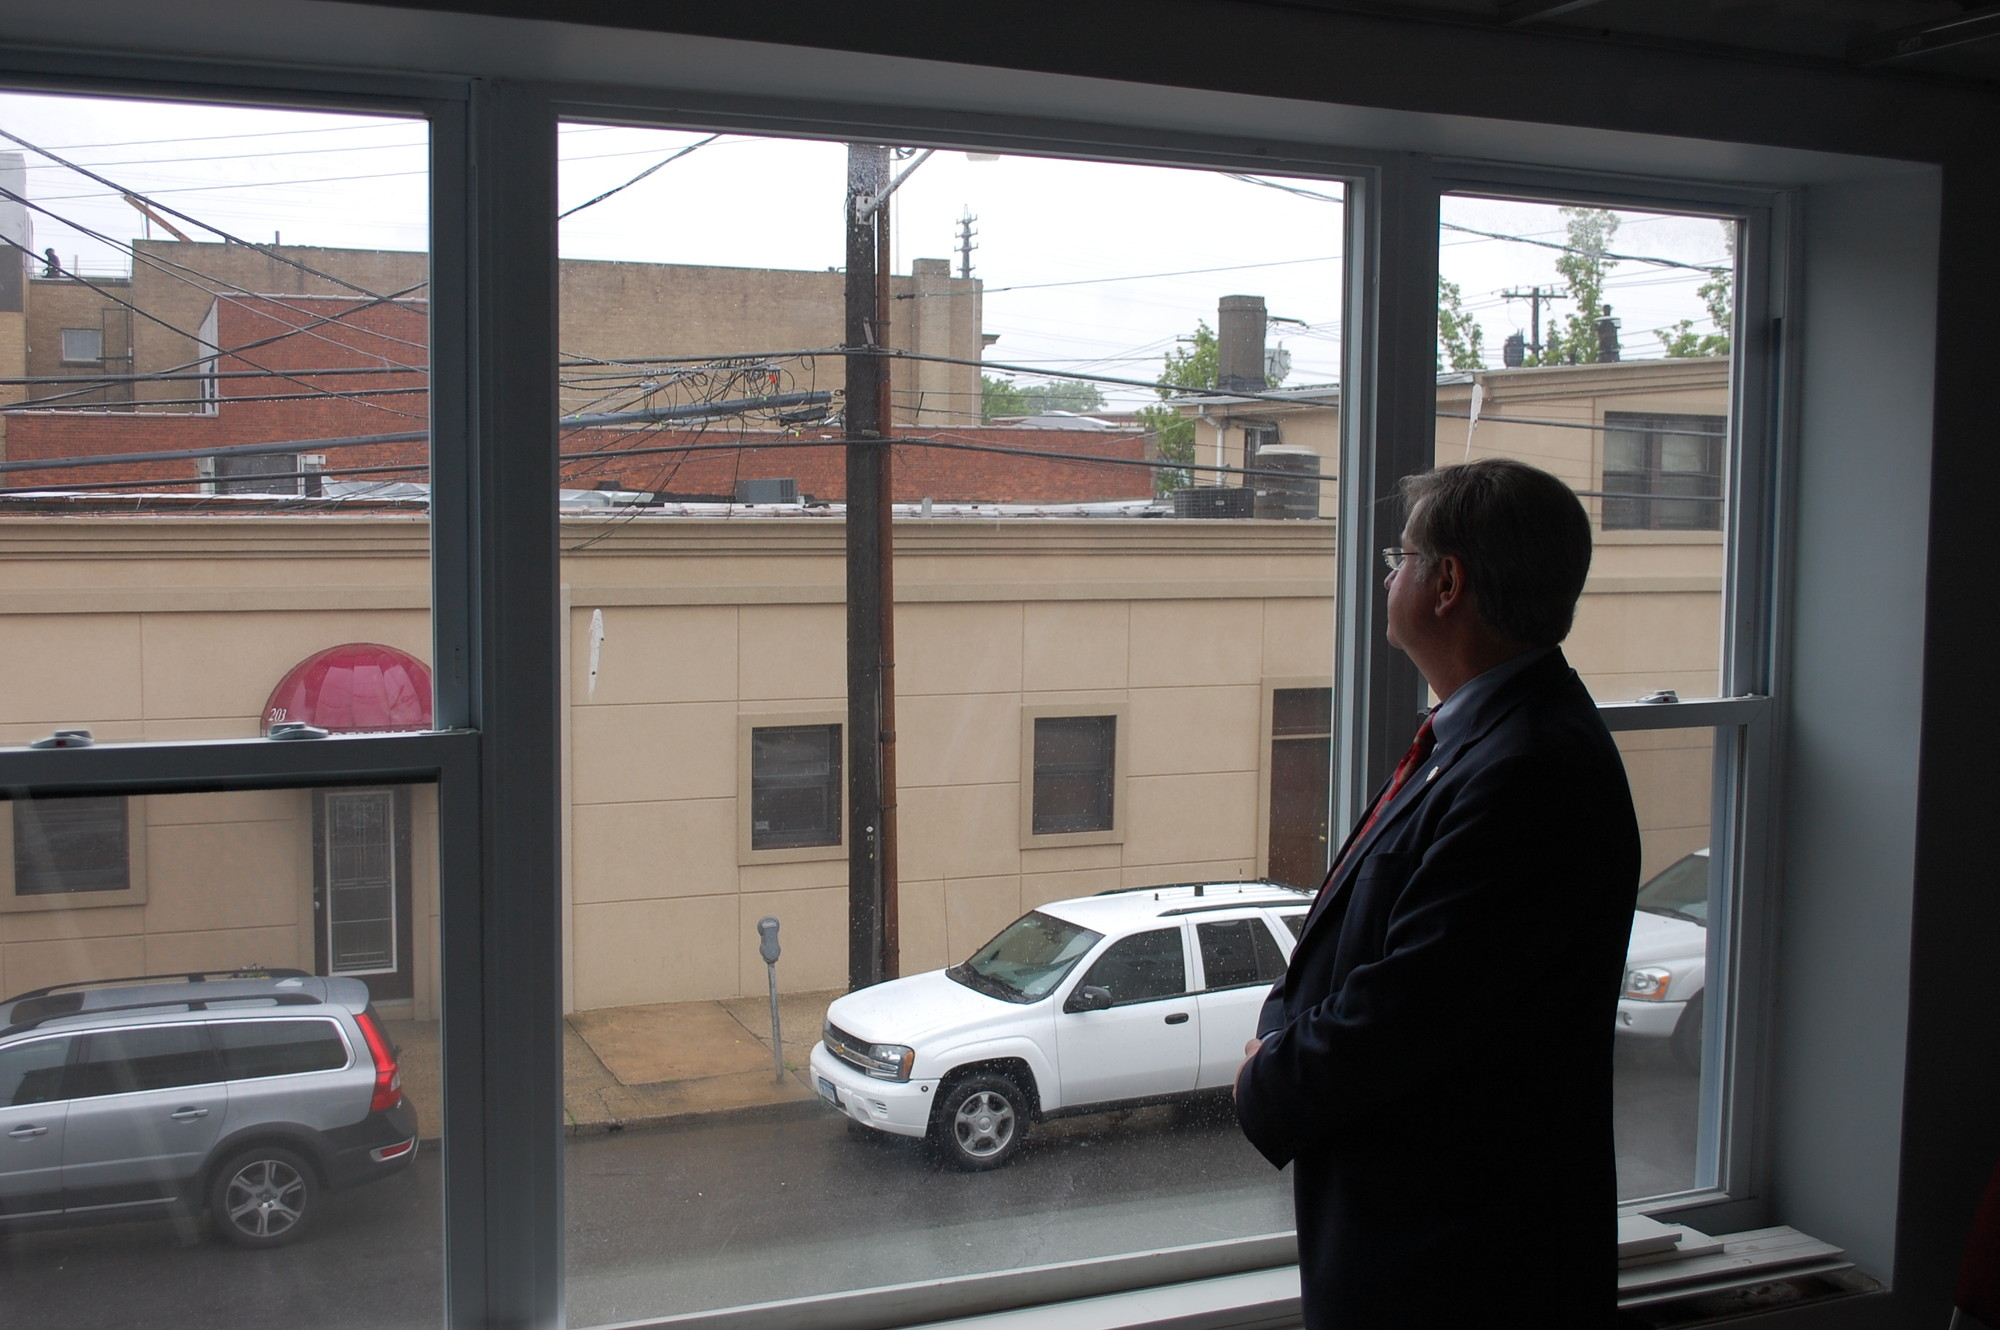 Village Justice Robert Bogle looks out the window from his future office at 195 Rockaway Ave.